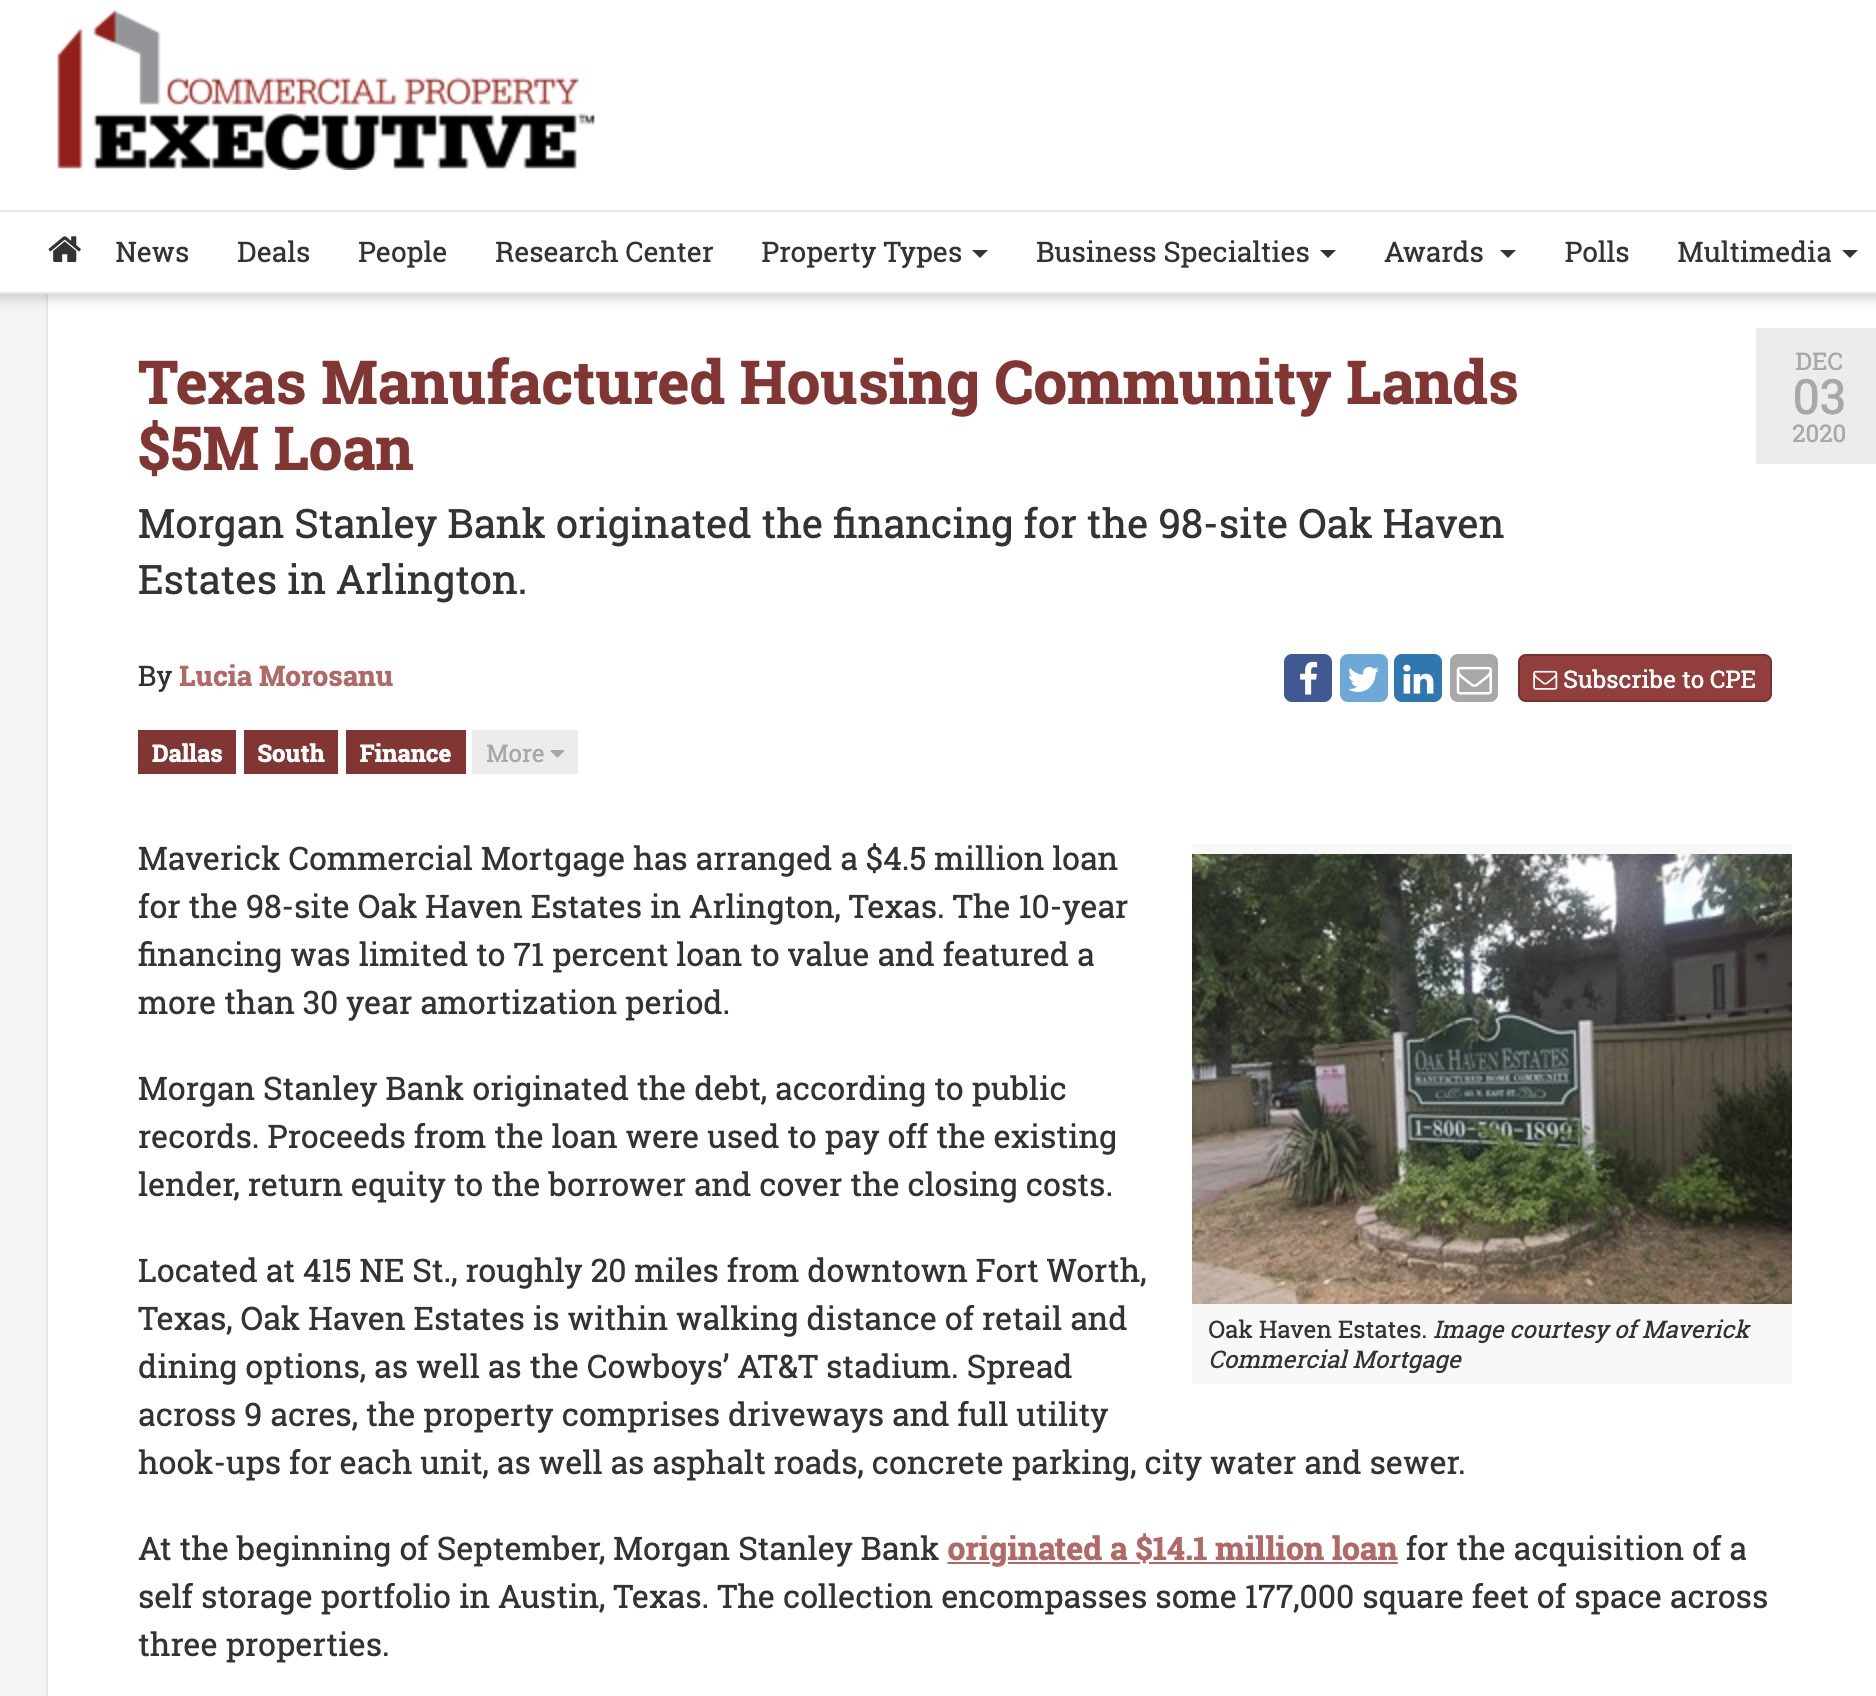 Texas Manufactured Housing Community Lands $5M Loan